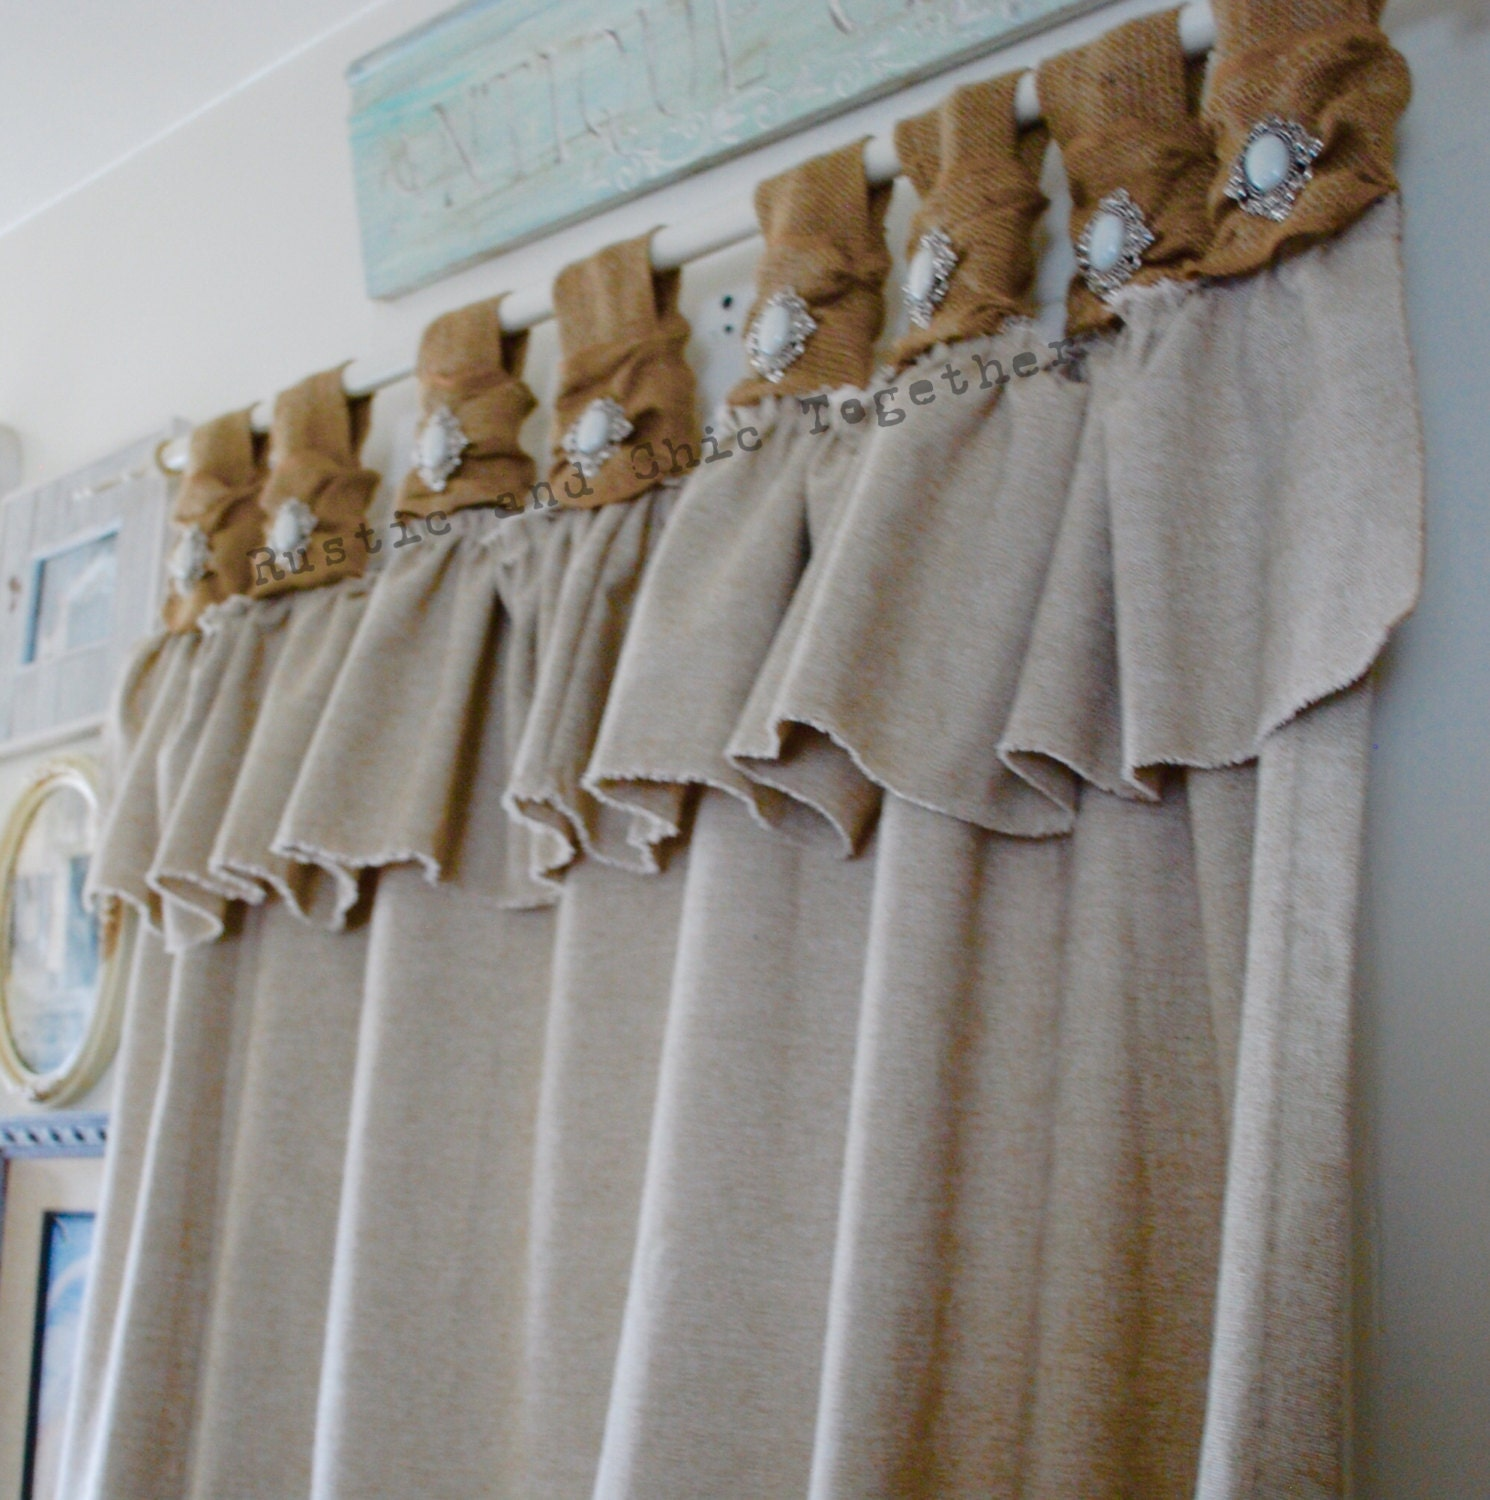 Linen Jewellery: Burlap And Linen Curtains With Jewelry Accent